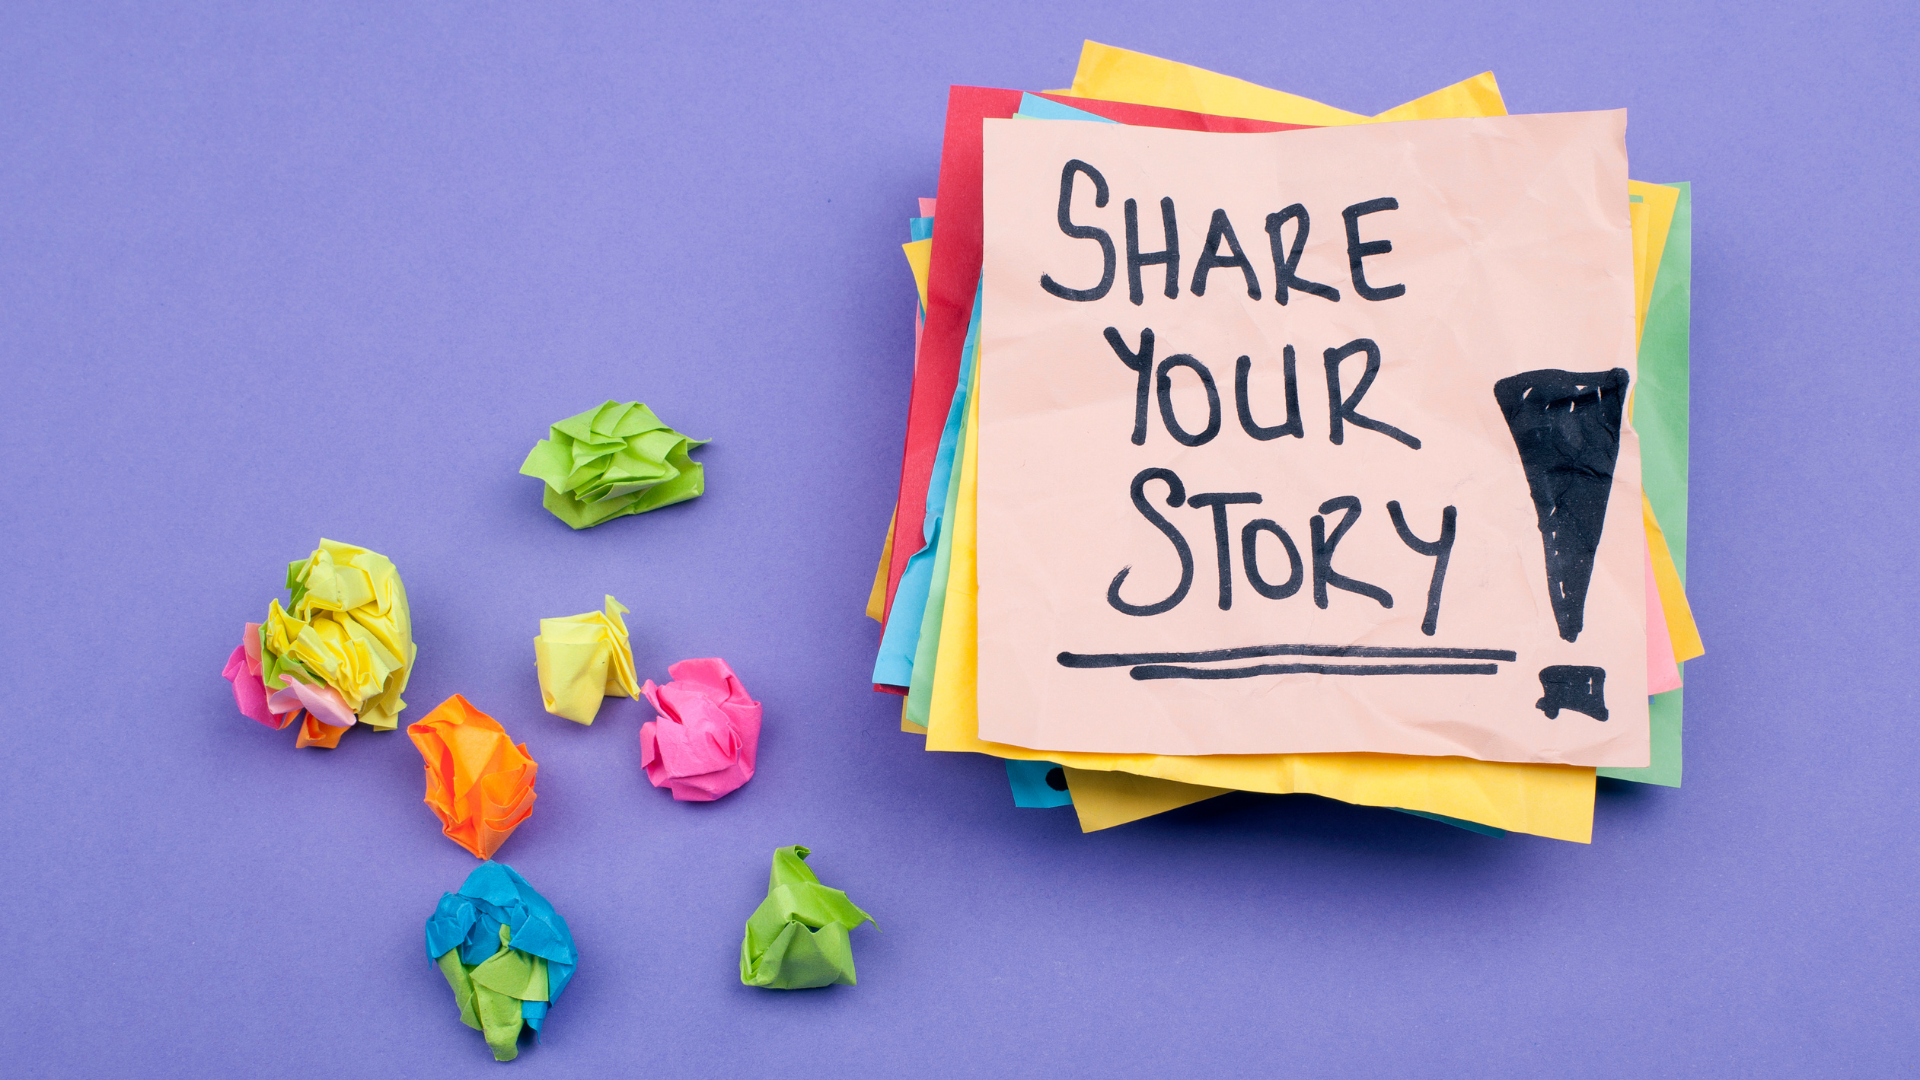 share-your-story-post-it-note